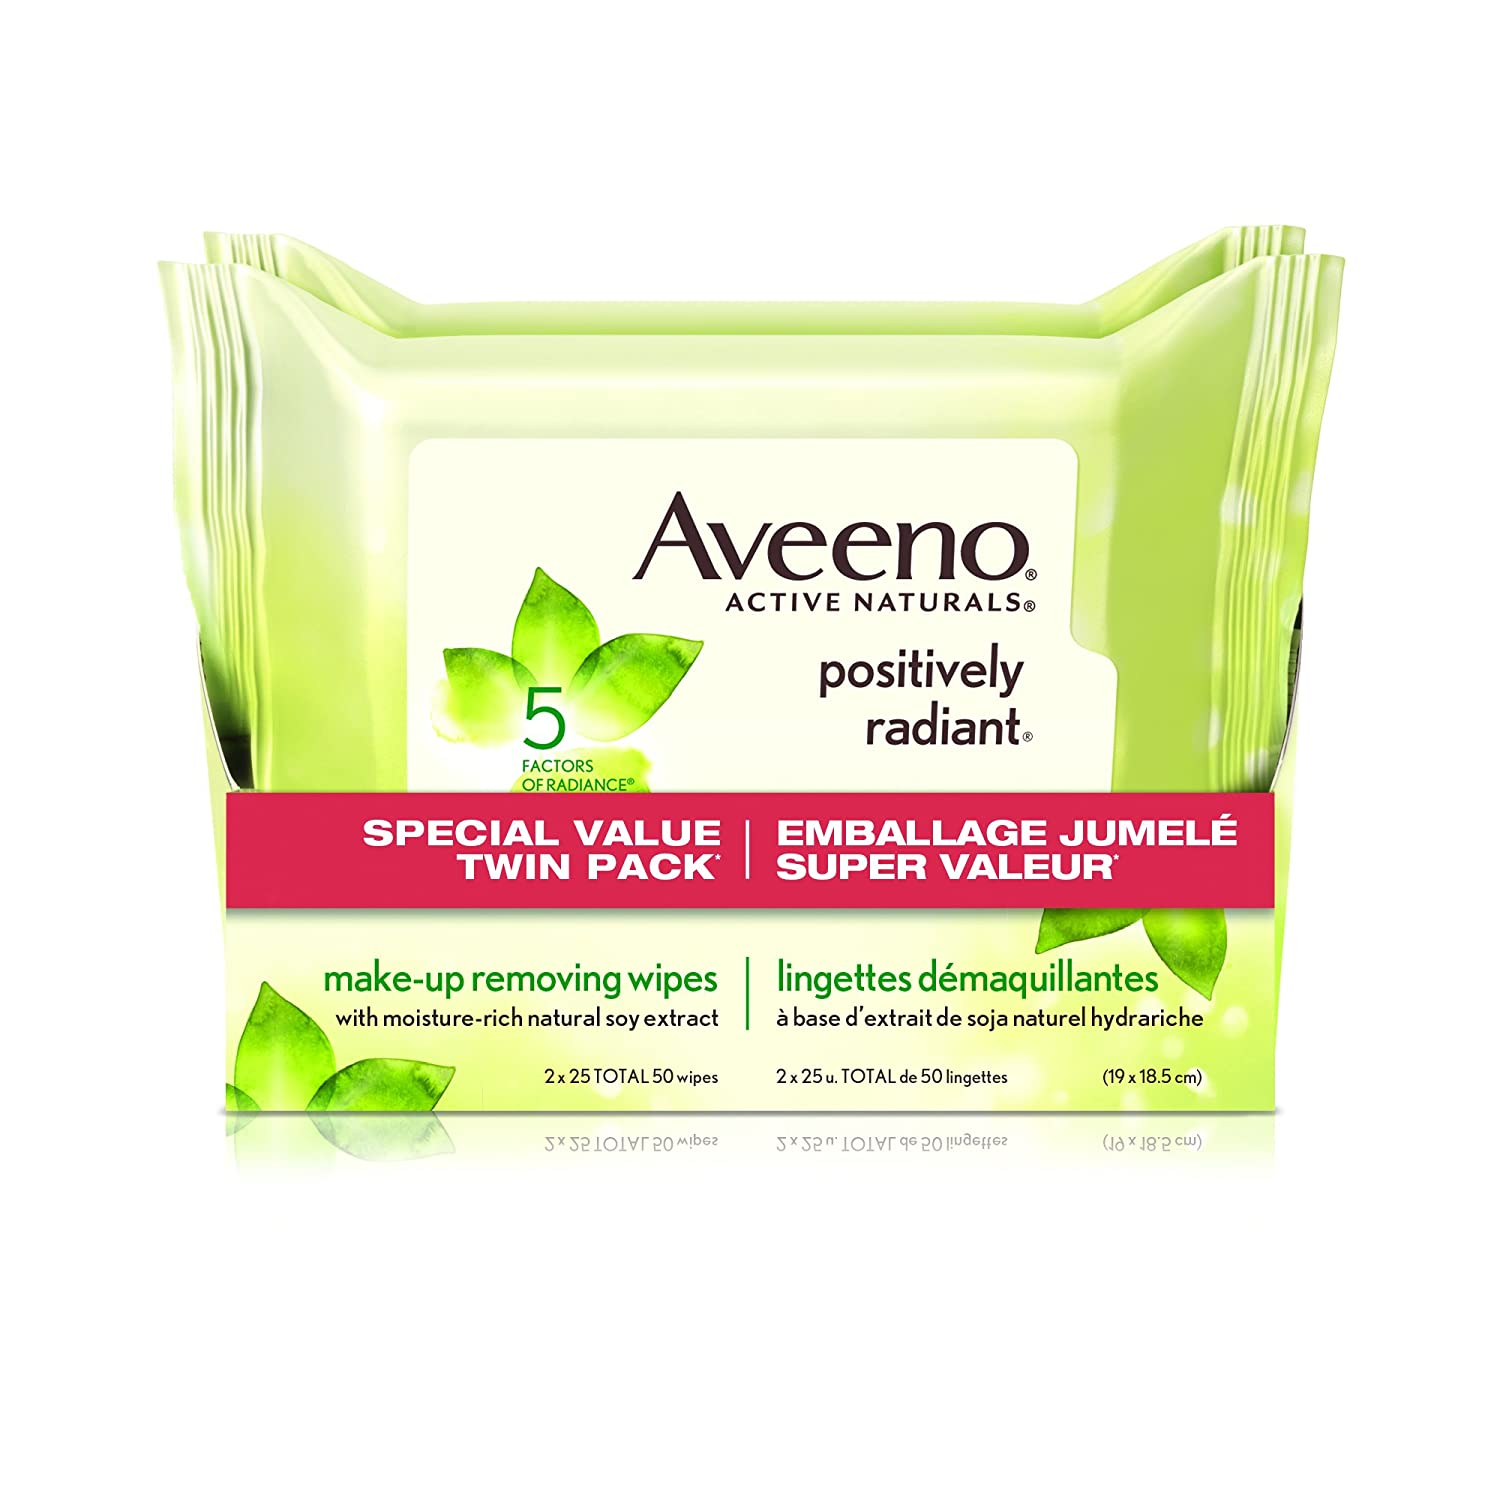 Aveeno Face Wipes, Positively Radiant Makeup Wipes with Natural Soy Extract, 50 Count Johnson & Johnson